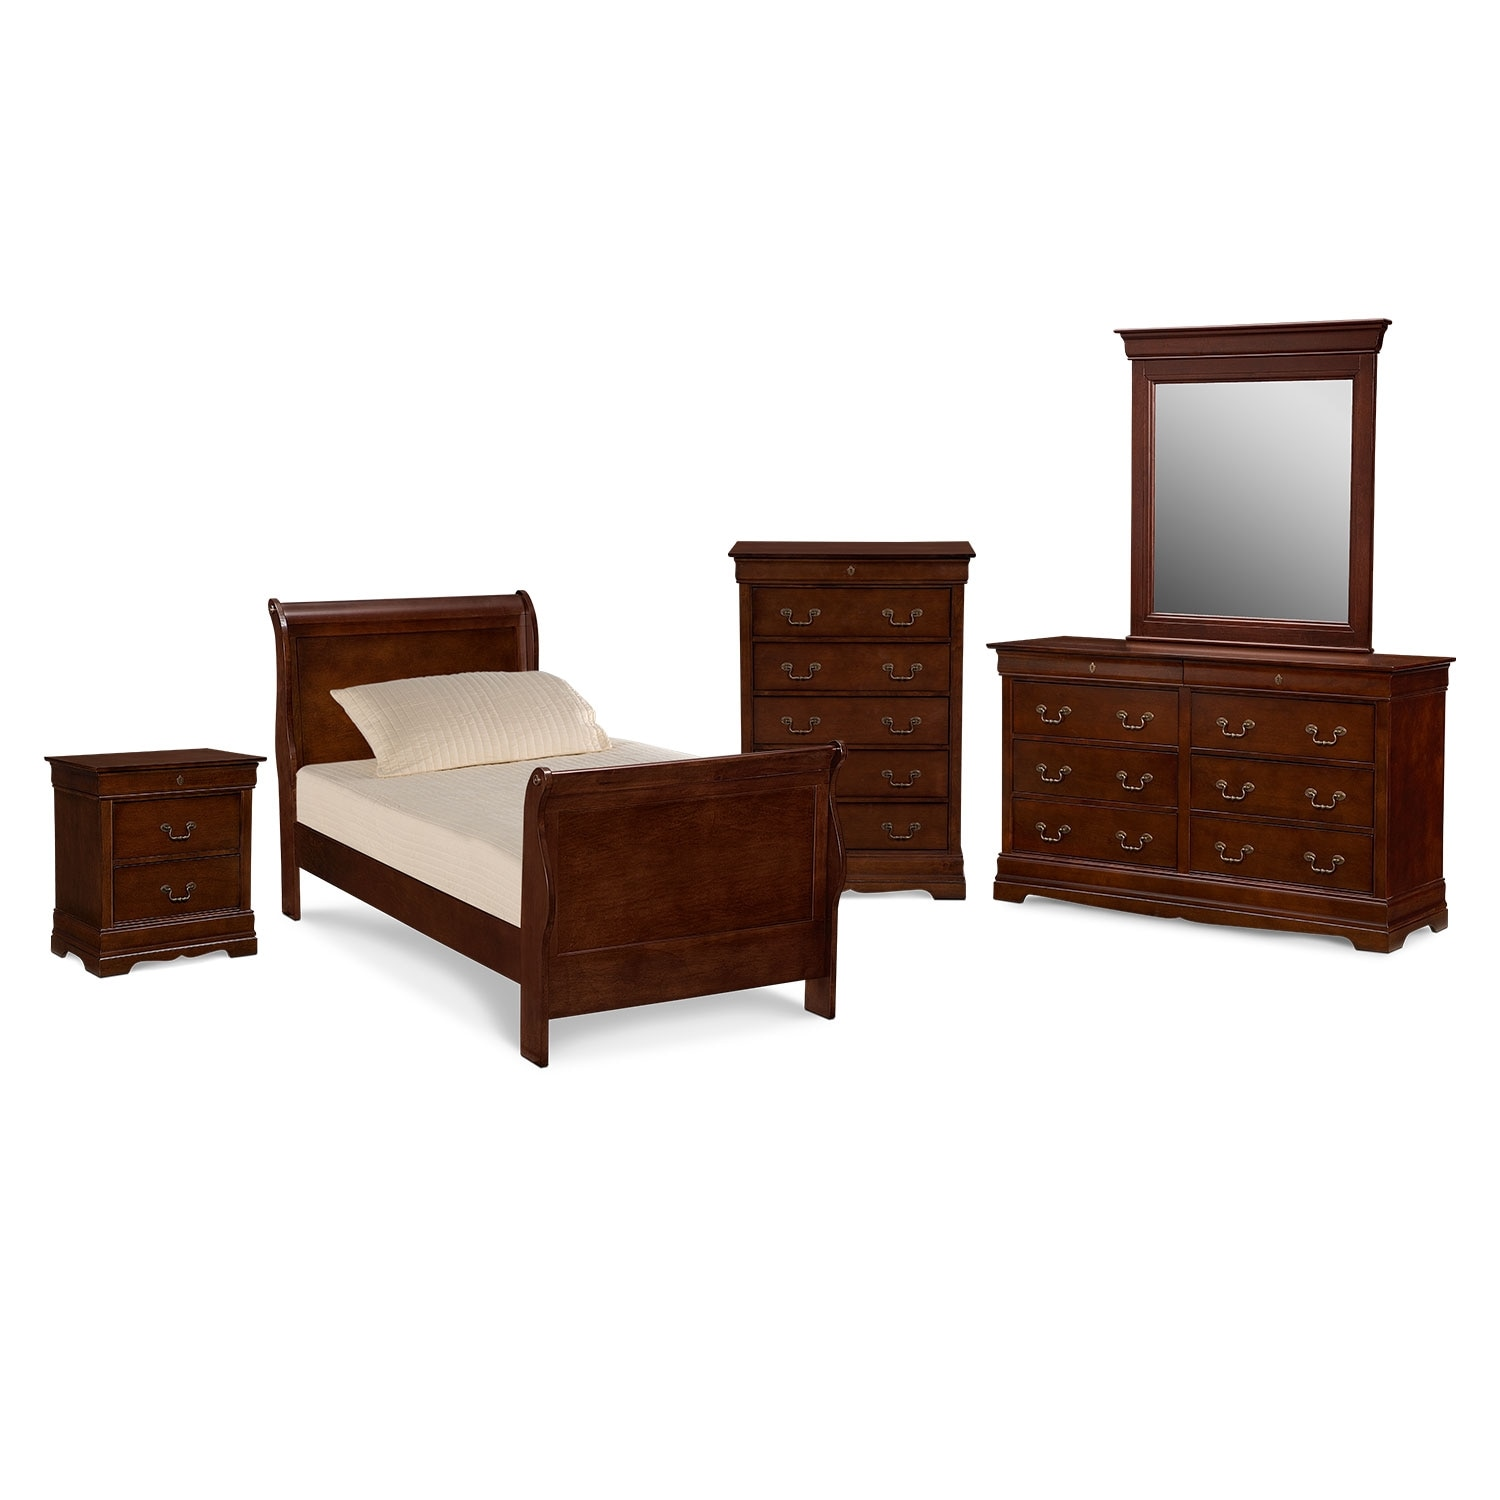 Kids Furniture - Neo Classic Youth 7-Piece Bedroom Set with Chest, Nightstand, Dresser and Mirror